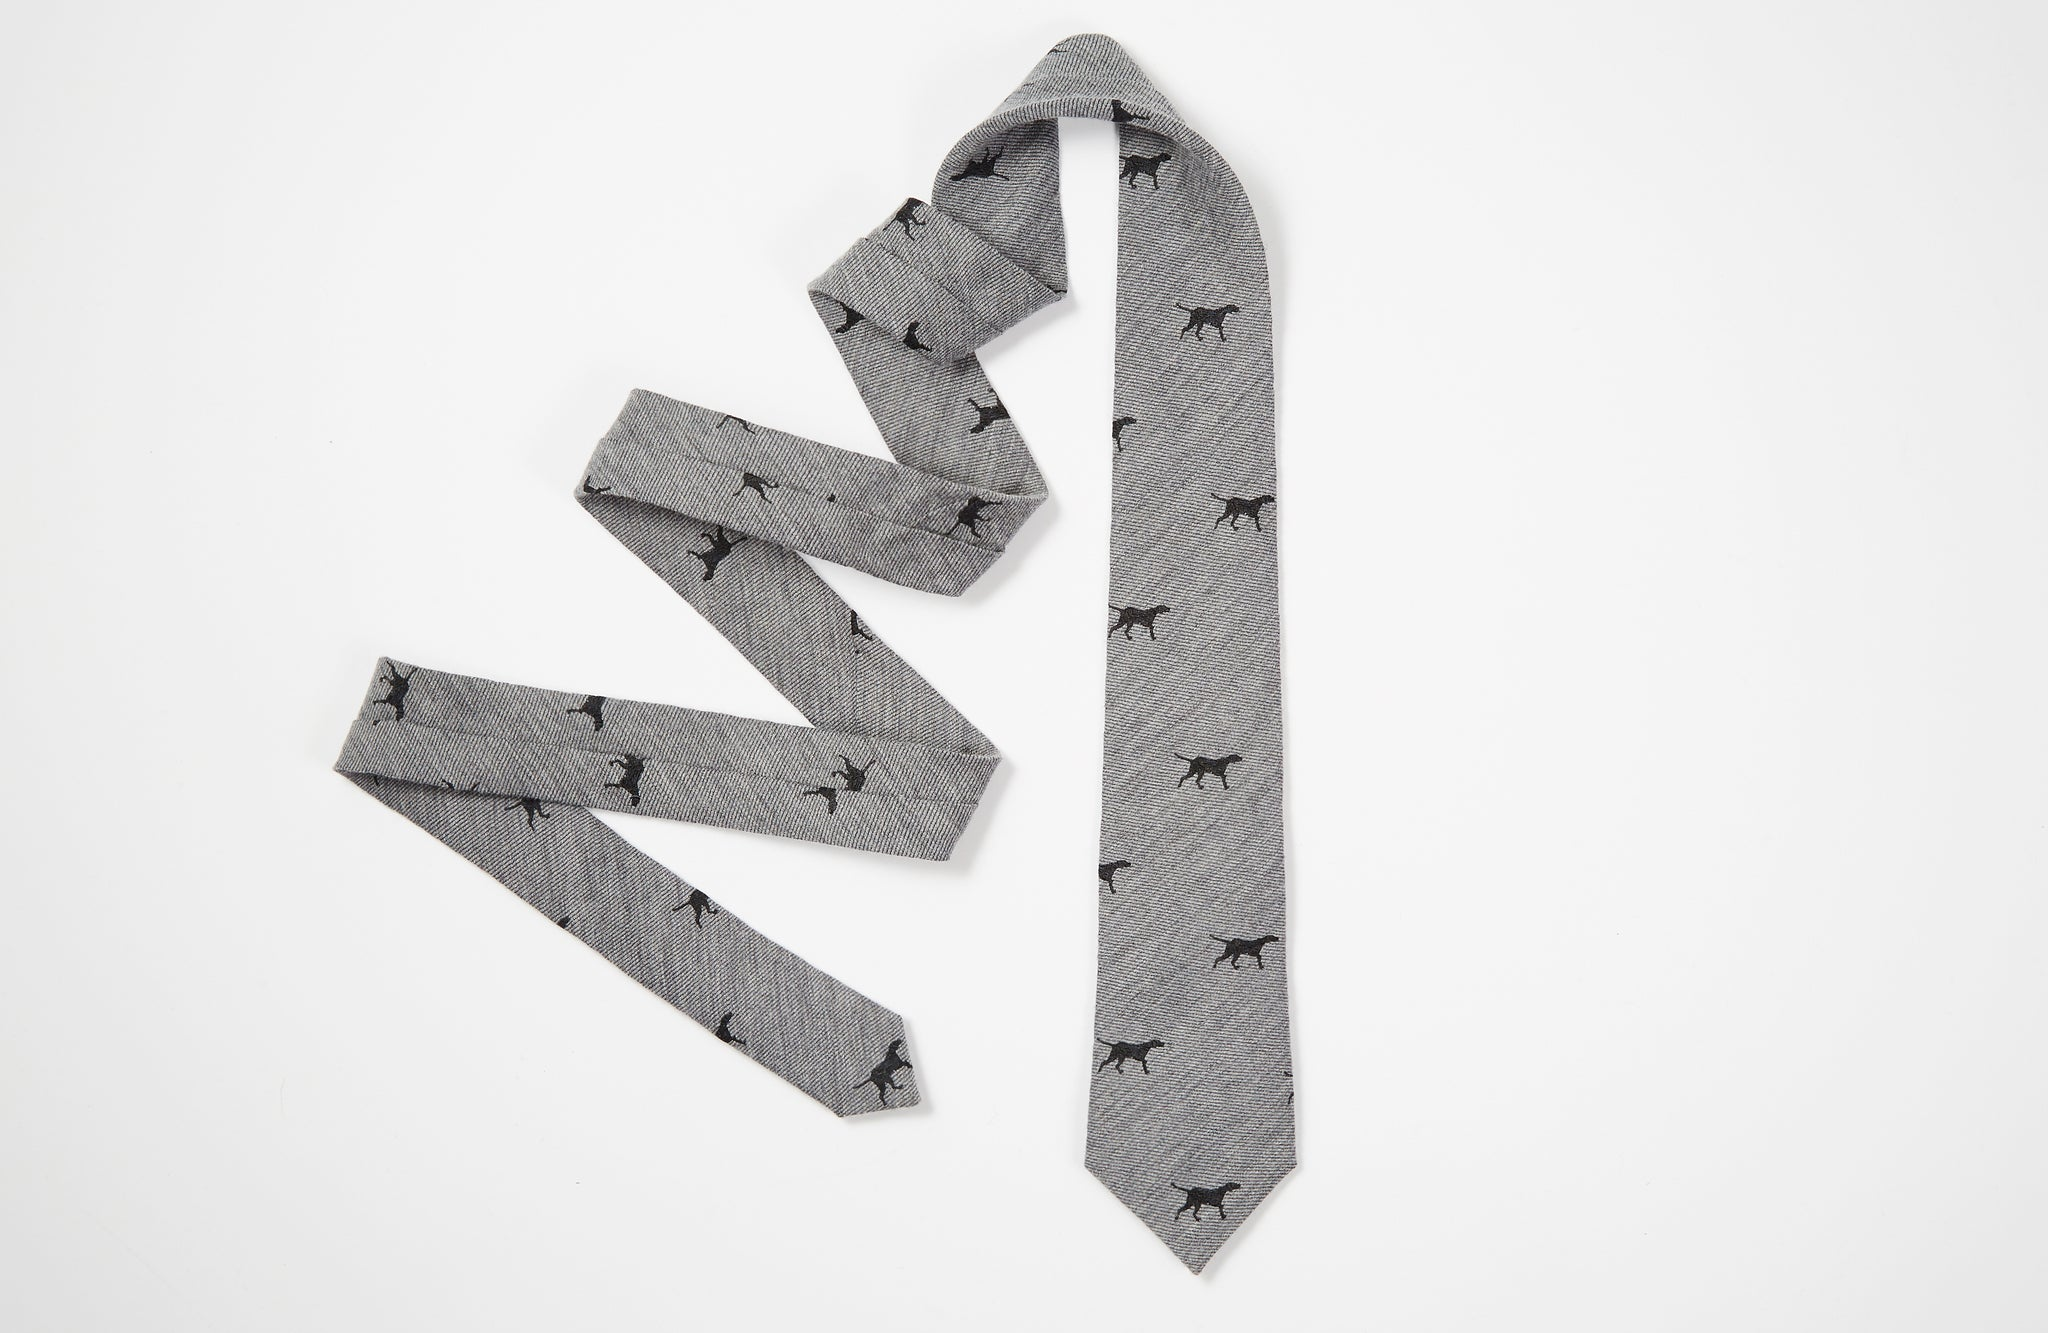 The Hunting Dog Necktie